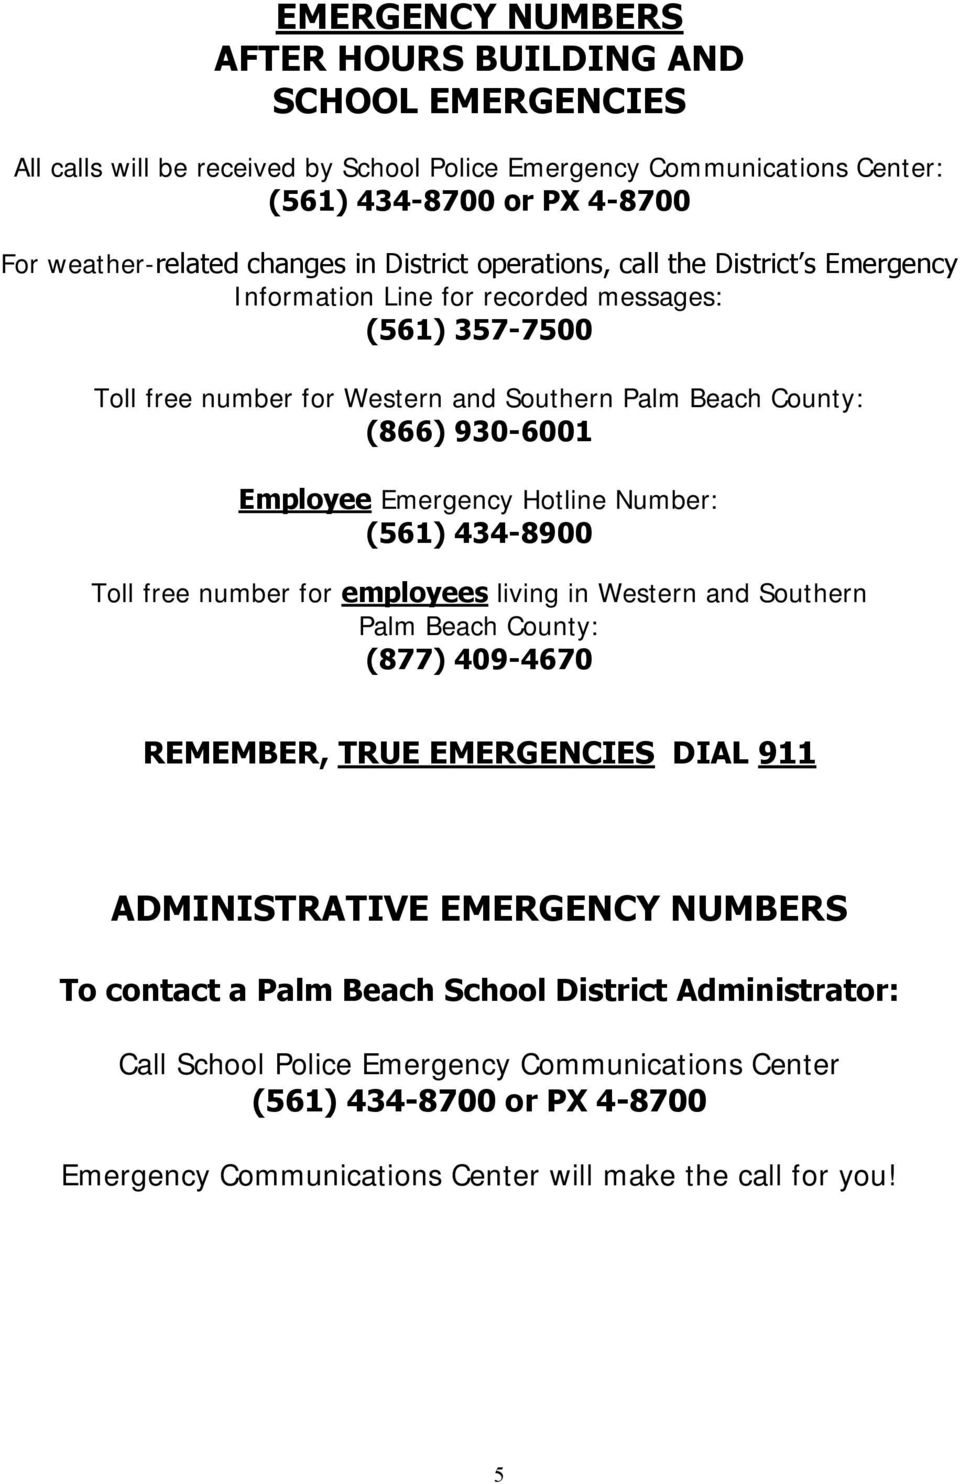 Emergency Hotline Number: (561) 434-8900 Toll free number for employees living in Western and Southern Palm Beach County: (877) 409-4670 REMEMBER, TRUE EMERGENCIES DIAL 911 ADMINISTRATIVE EMERGENCY